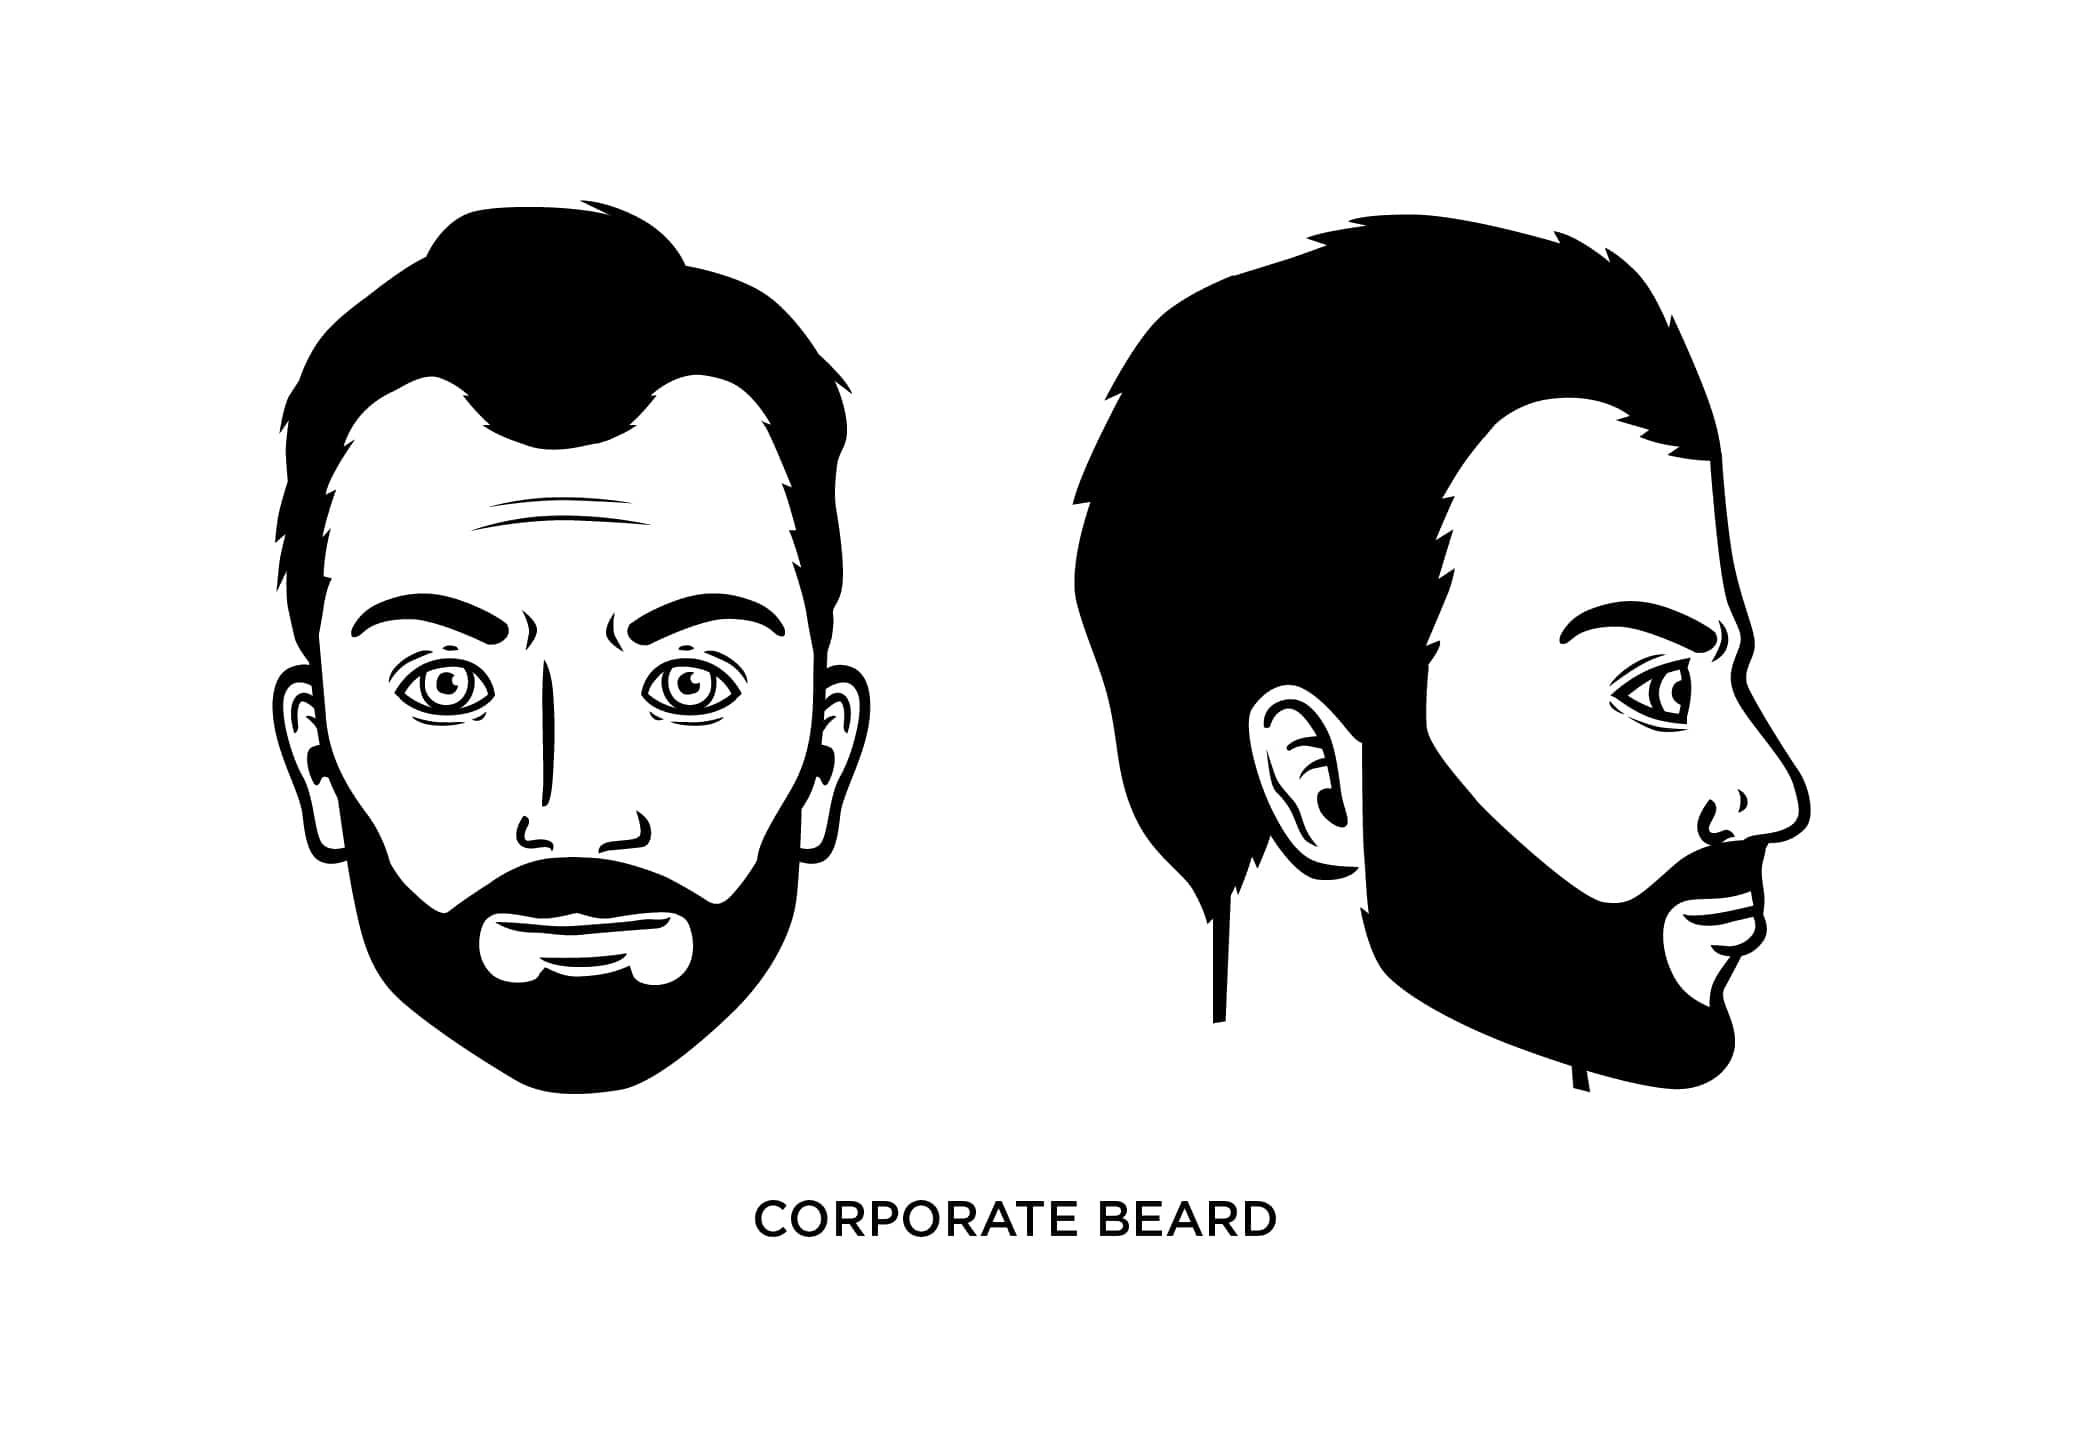 The Corporate Beard Style: How to Grow, Guide, Examples